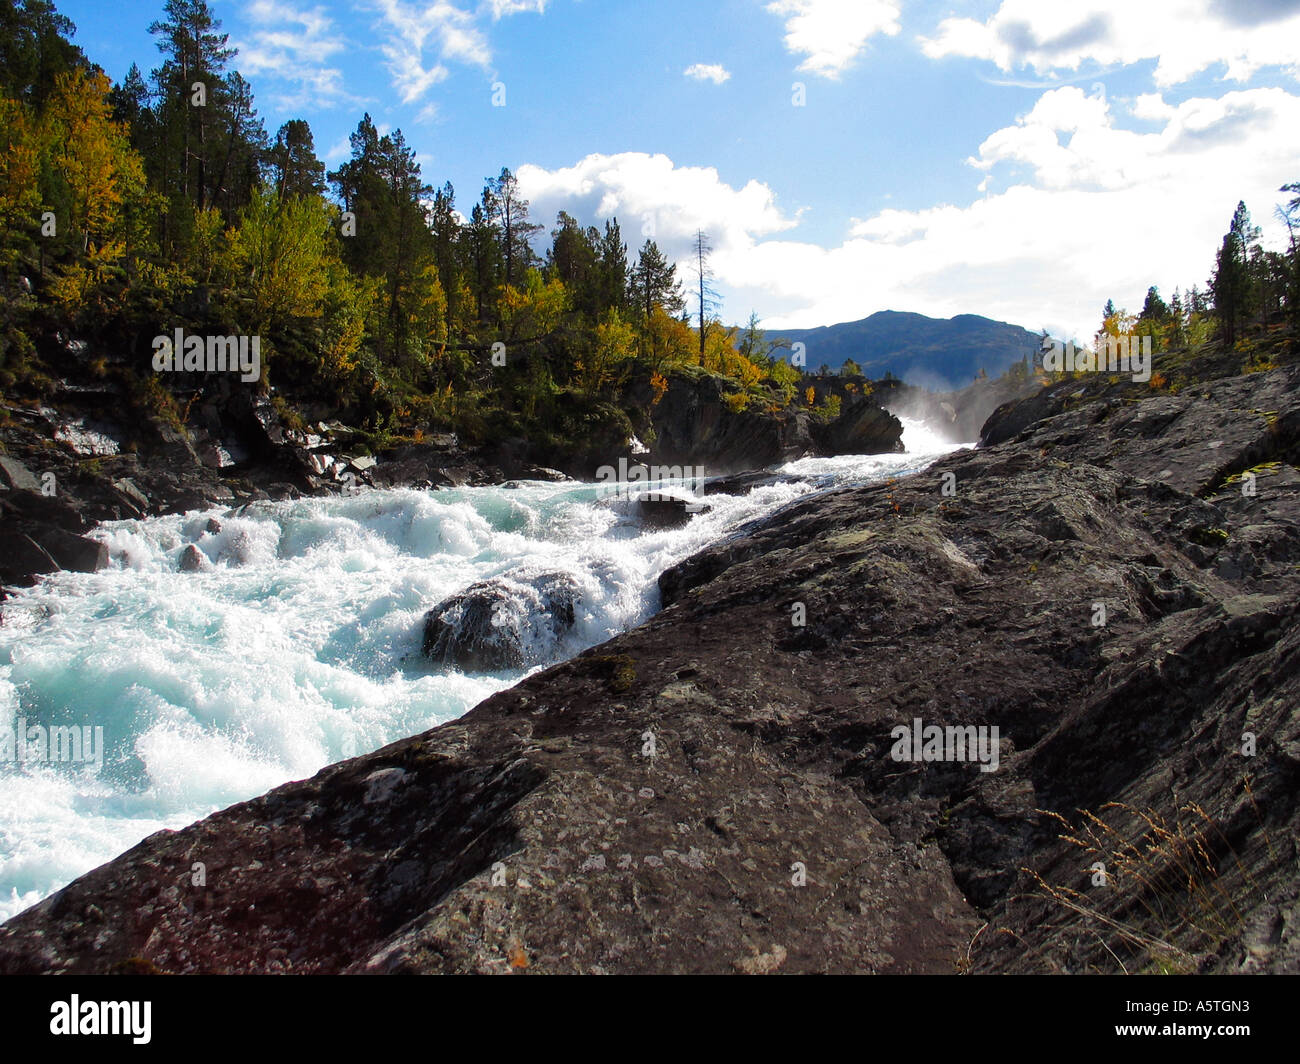 Extreme white water river in Jotunheimen Norway - Stock Image